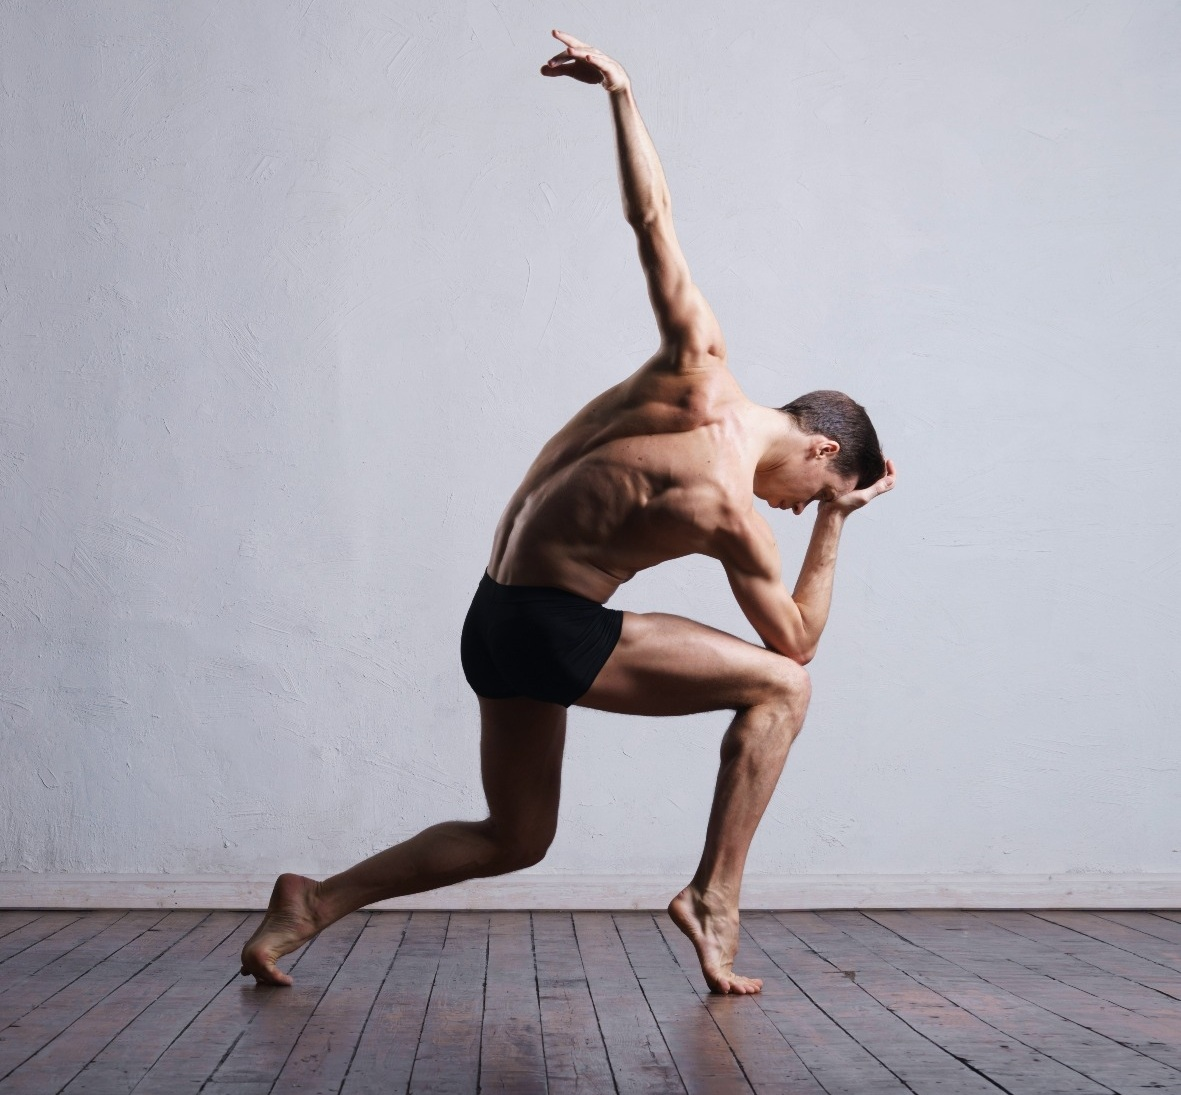 BODY AWARENESS - The Basic level slowly introduces you to the basic exercises and techniques that will gradually improve your balance, strength, flexibility and endurance.